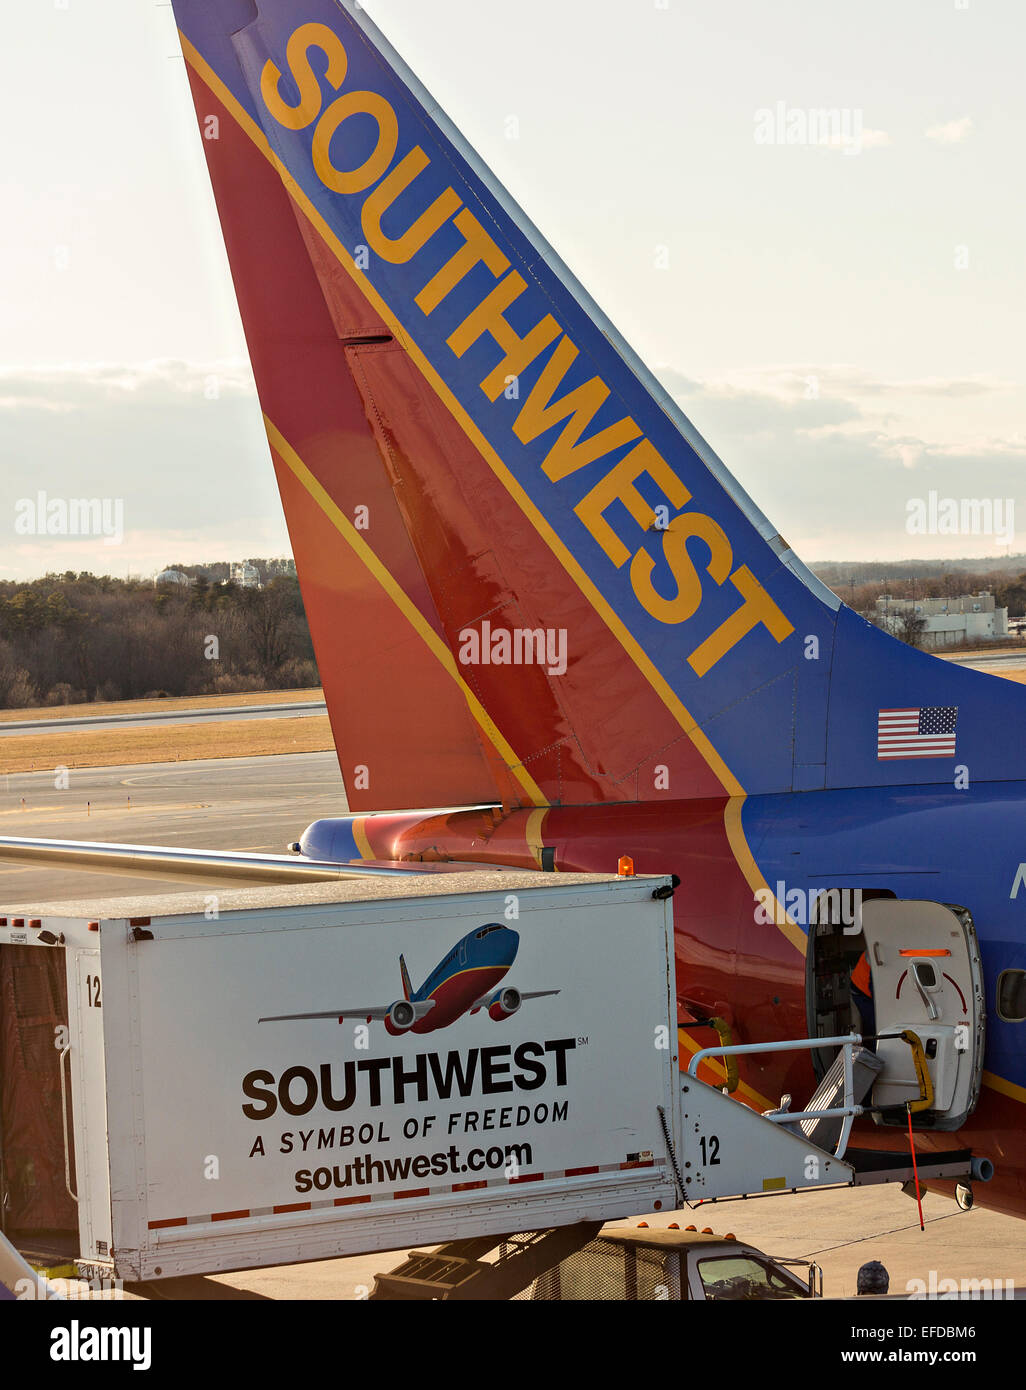 Southwest airlines boeing 737 aircraft line up at the gate in stock southwest airlines boeing 737 aircraft line up at the gate in memphis tn buycottarizona